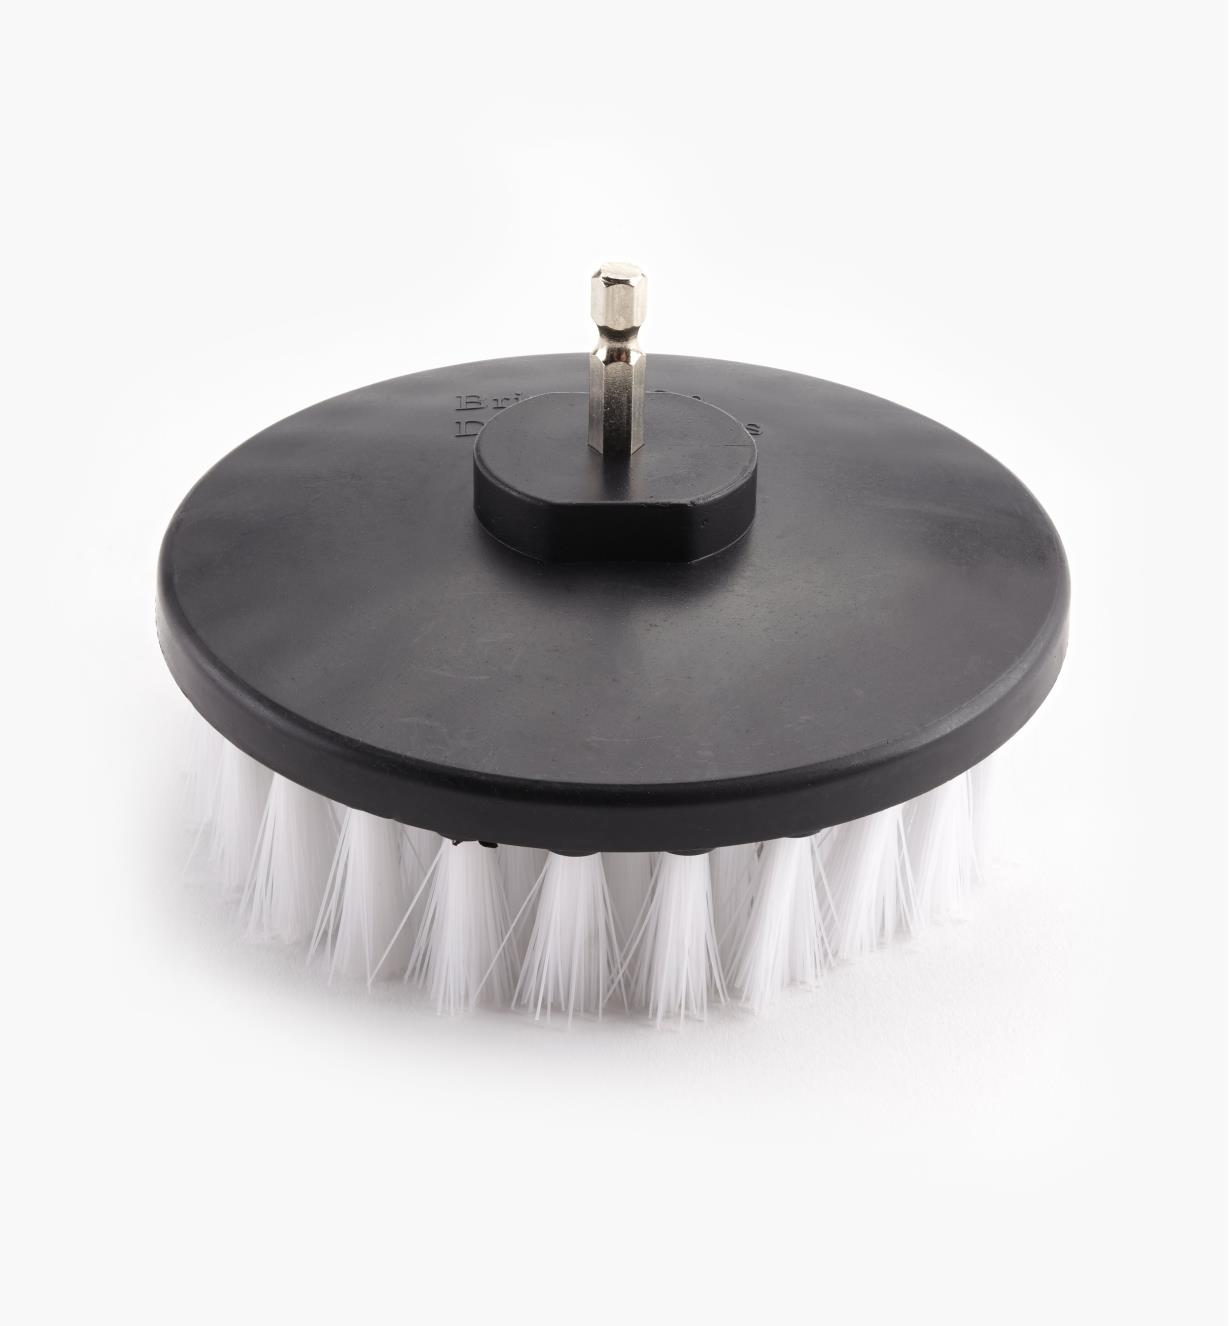 SA151 - Brosse ronde pour perceuse Drill Brush, poils doux